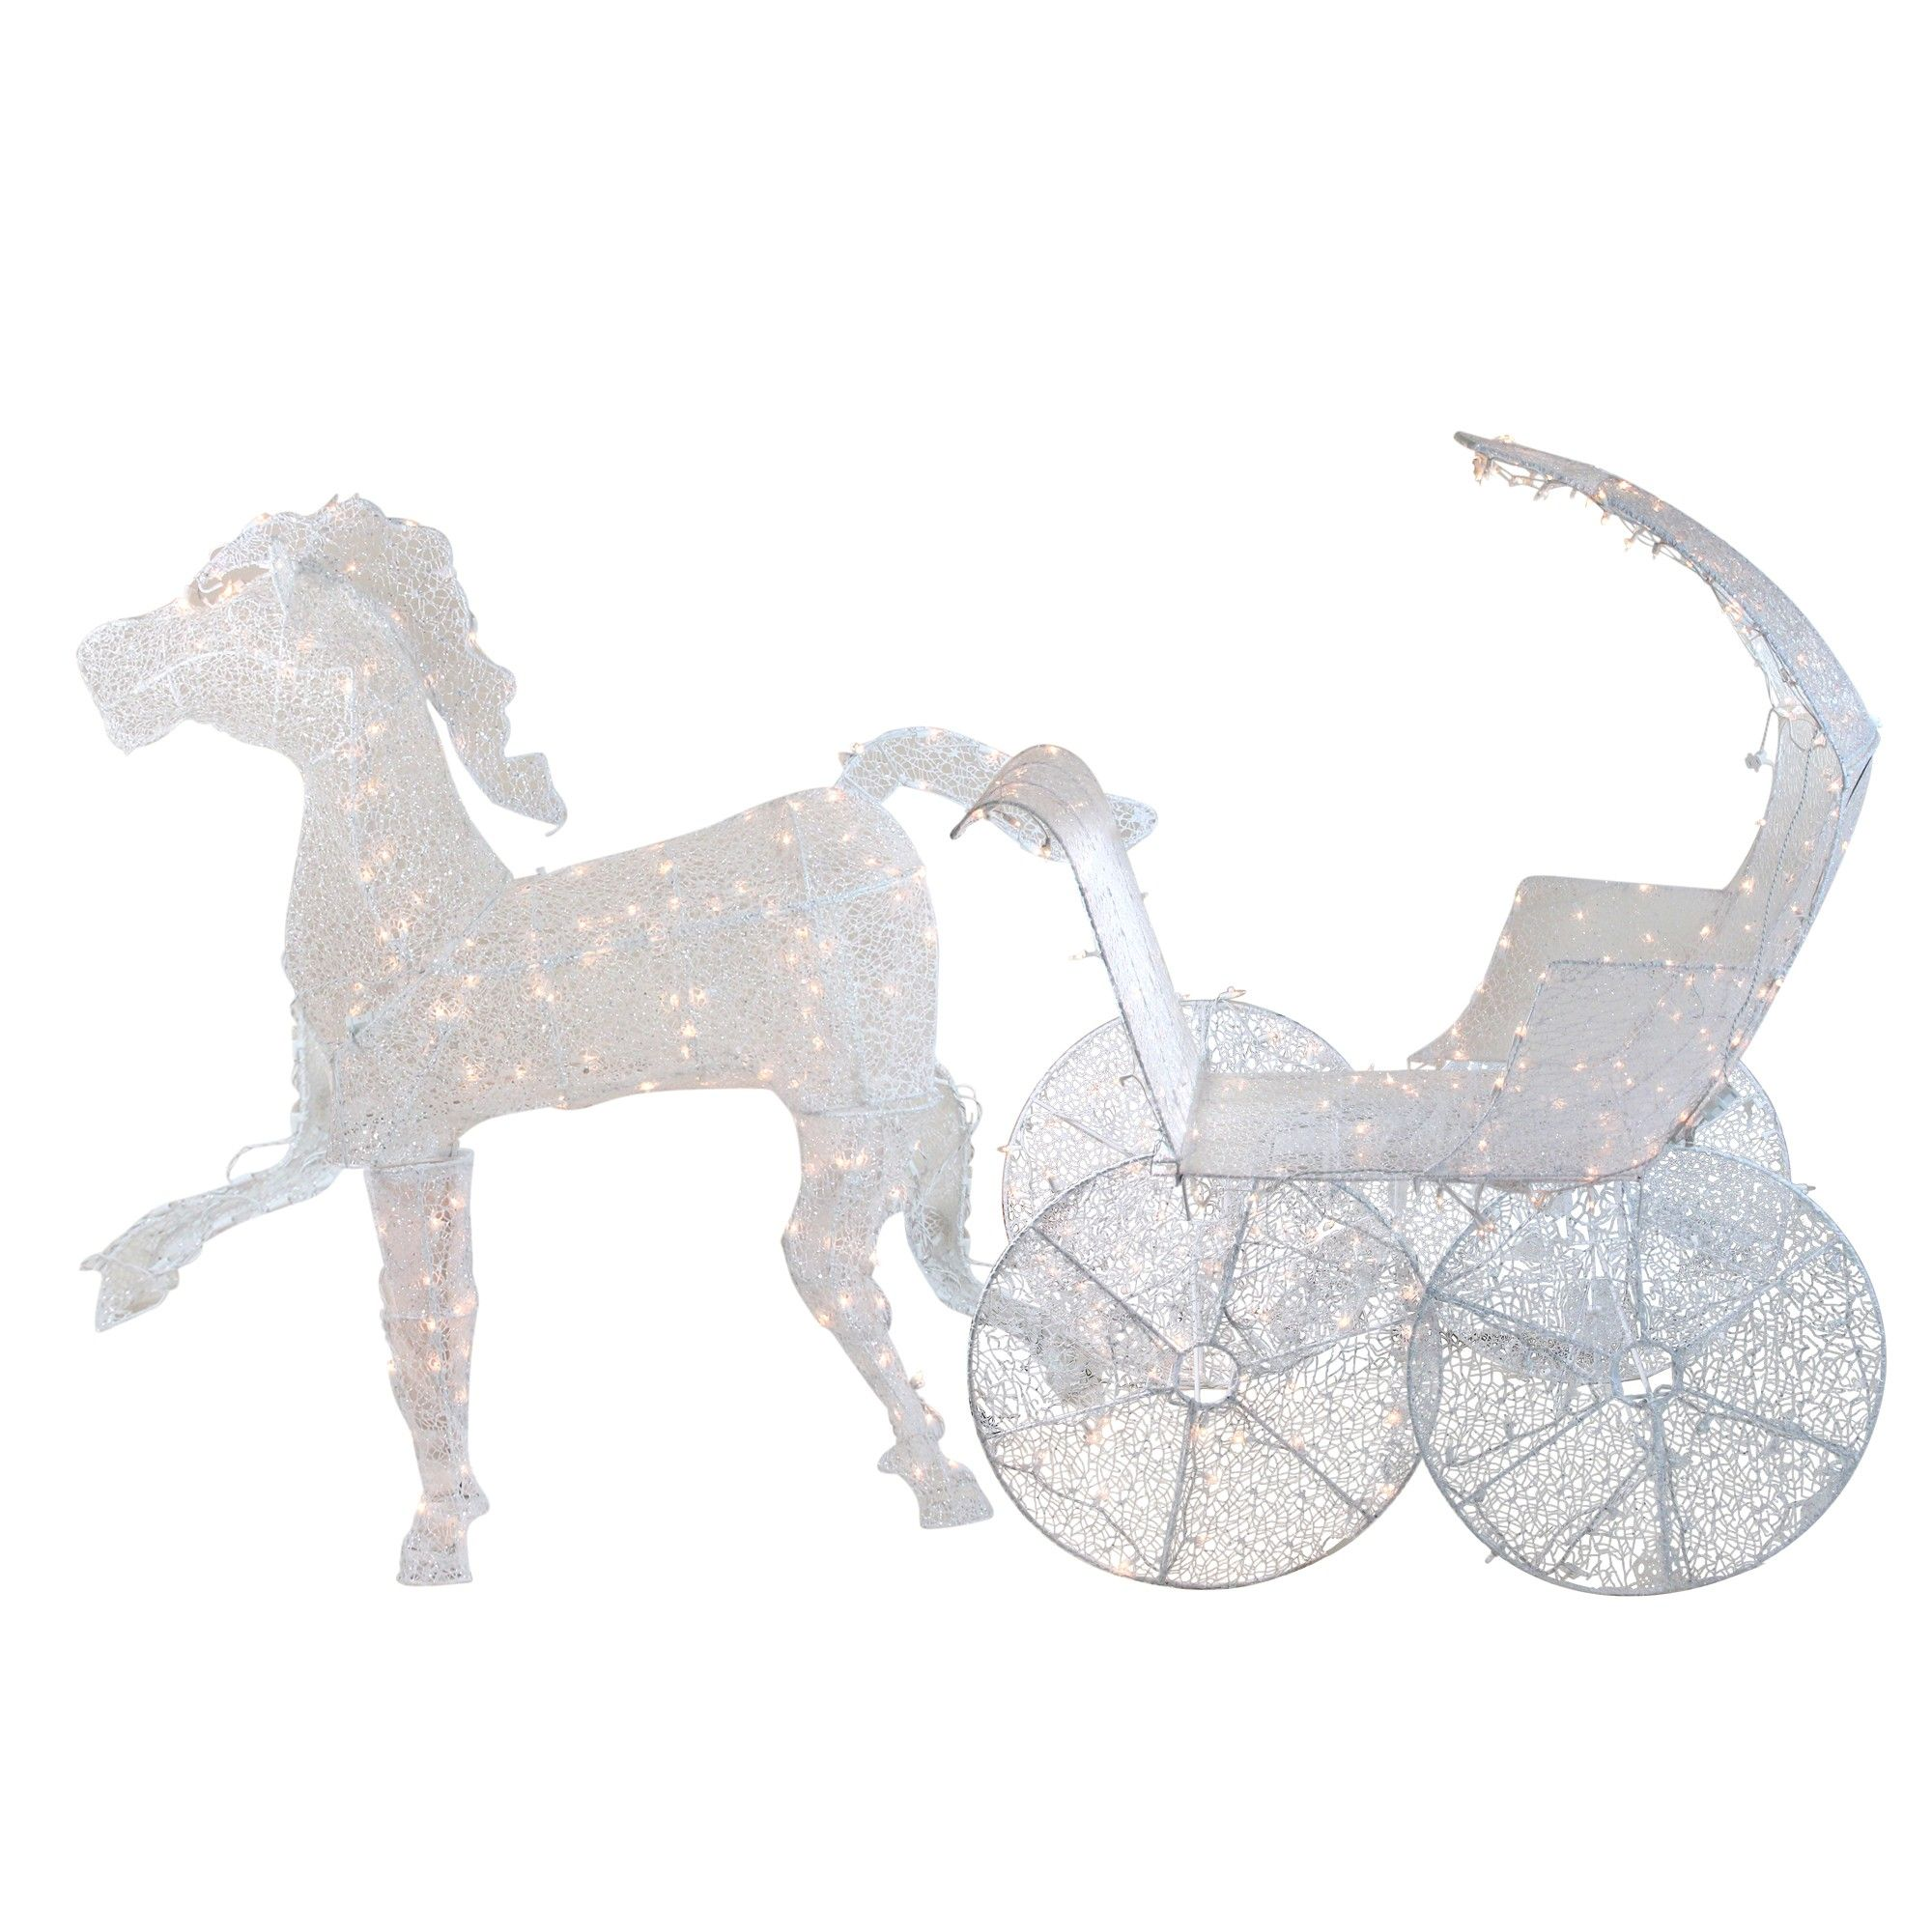 Lighted Crystal 3 D Horse And Carriage